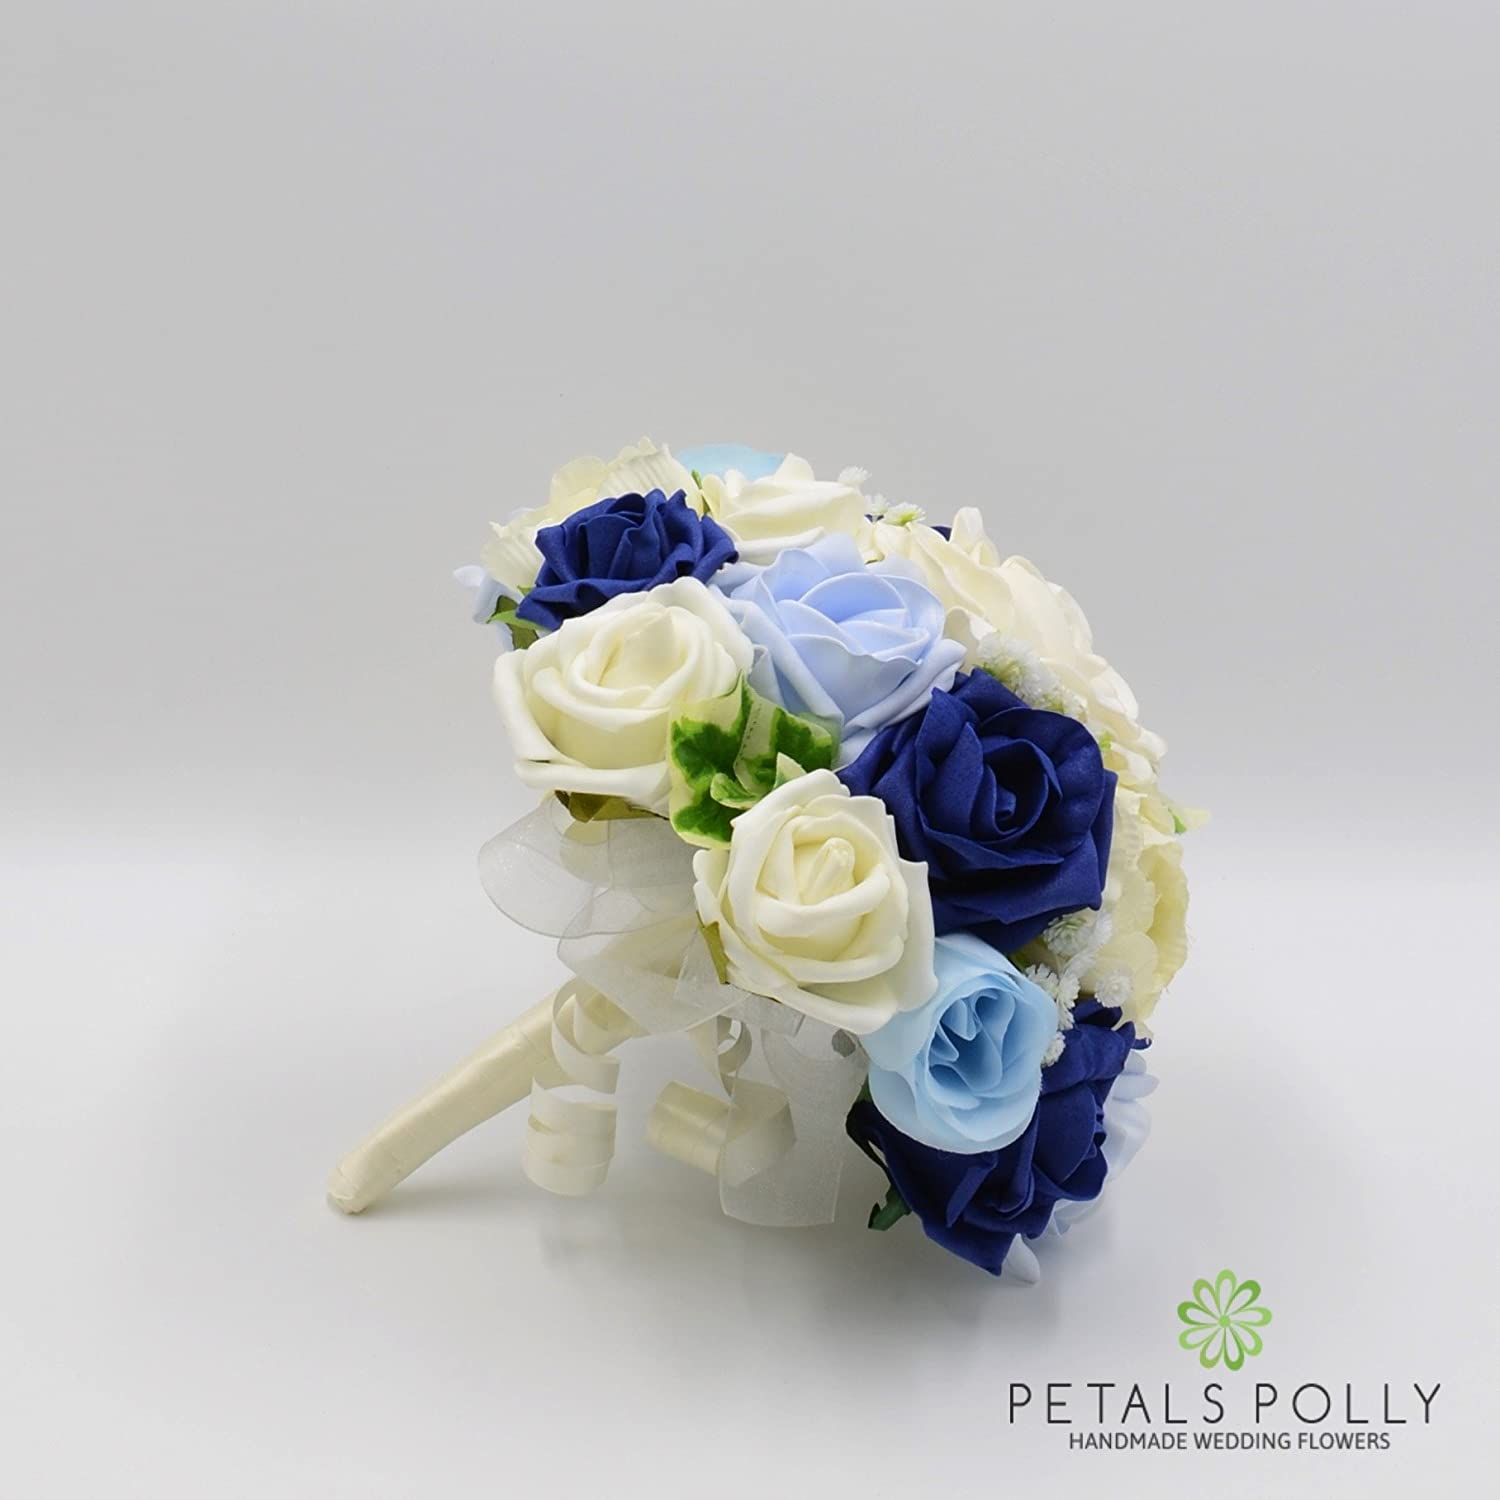 Bridesmaids Posy Navy Blue /& Ivory Roses with Ranunculus Baby Blue Silk Wedding Flowers Hand-Made by Petals Polly